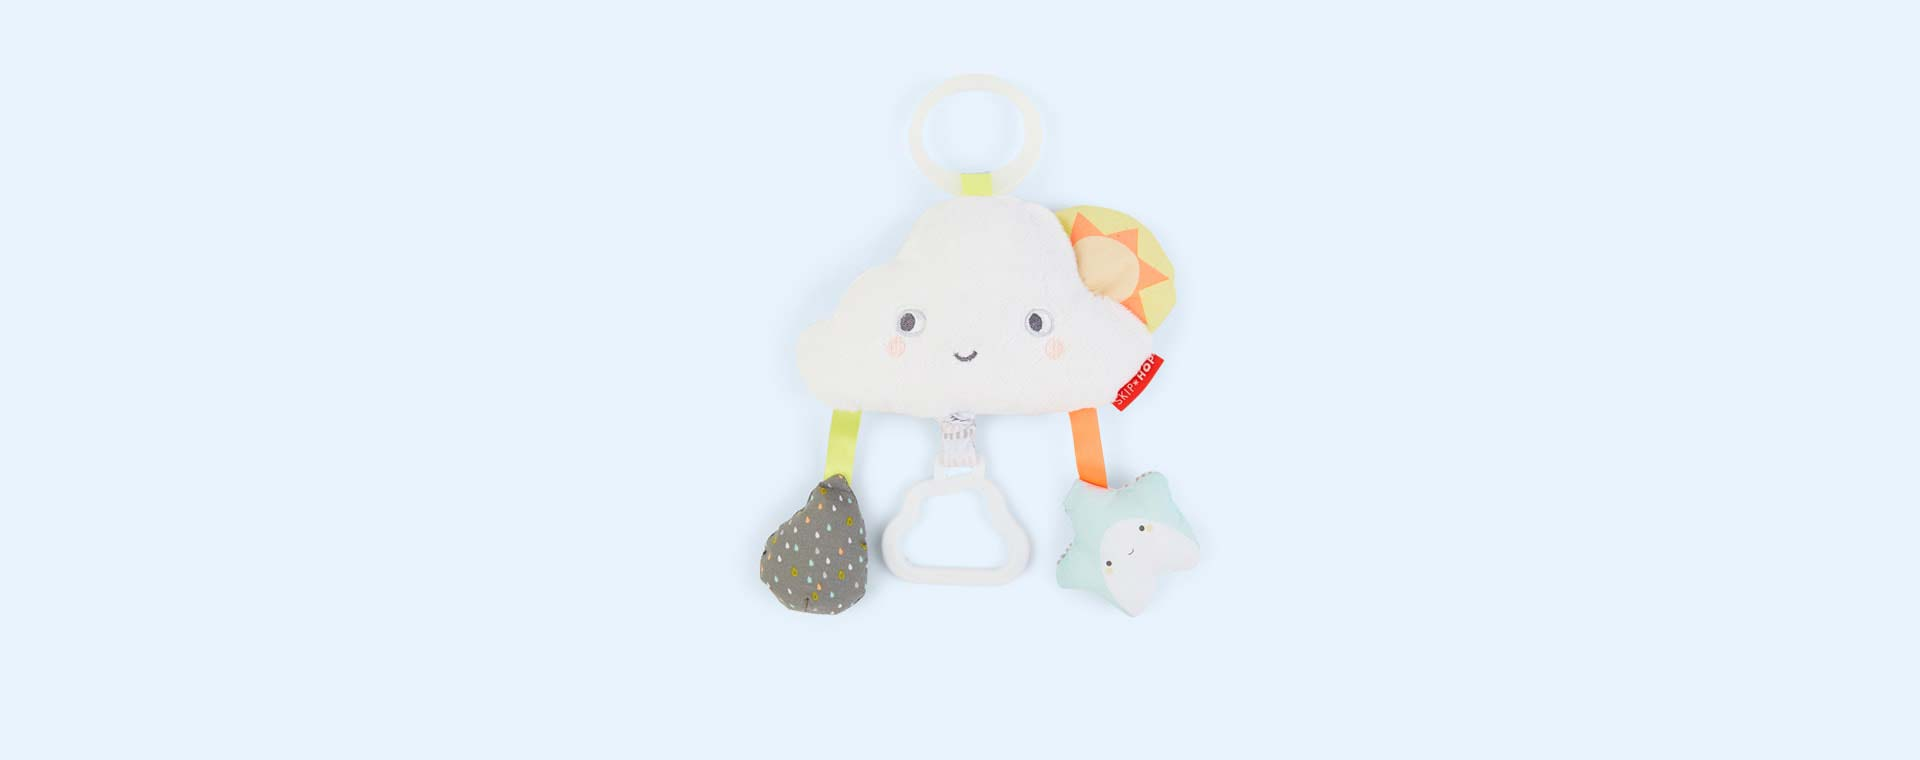 Cloud Skip Hop Silver Lining Cloud Jitter Stroller Baby Toy